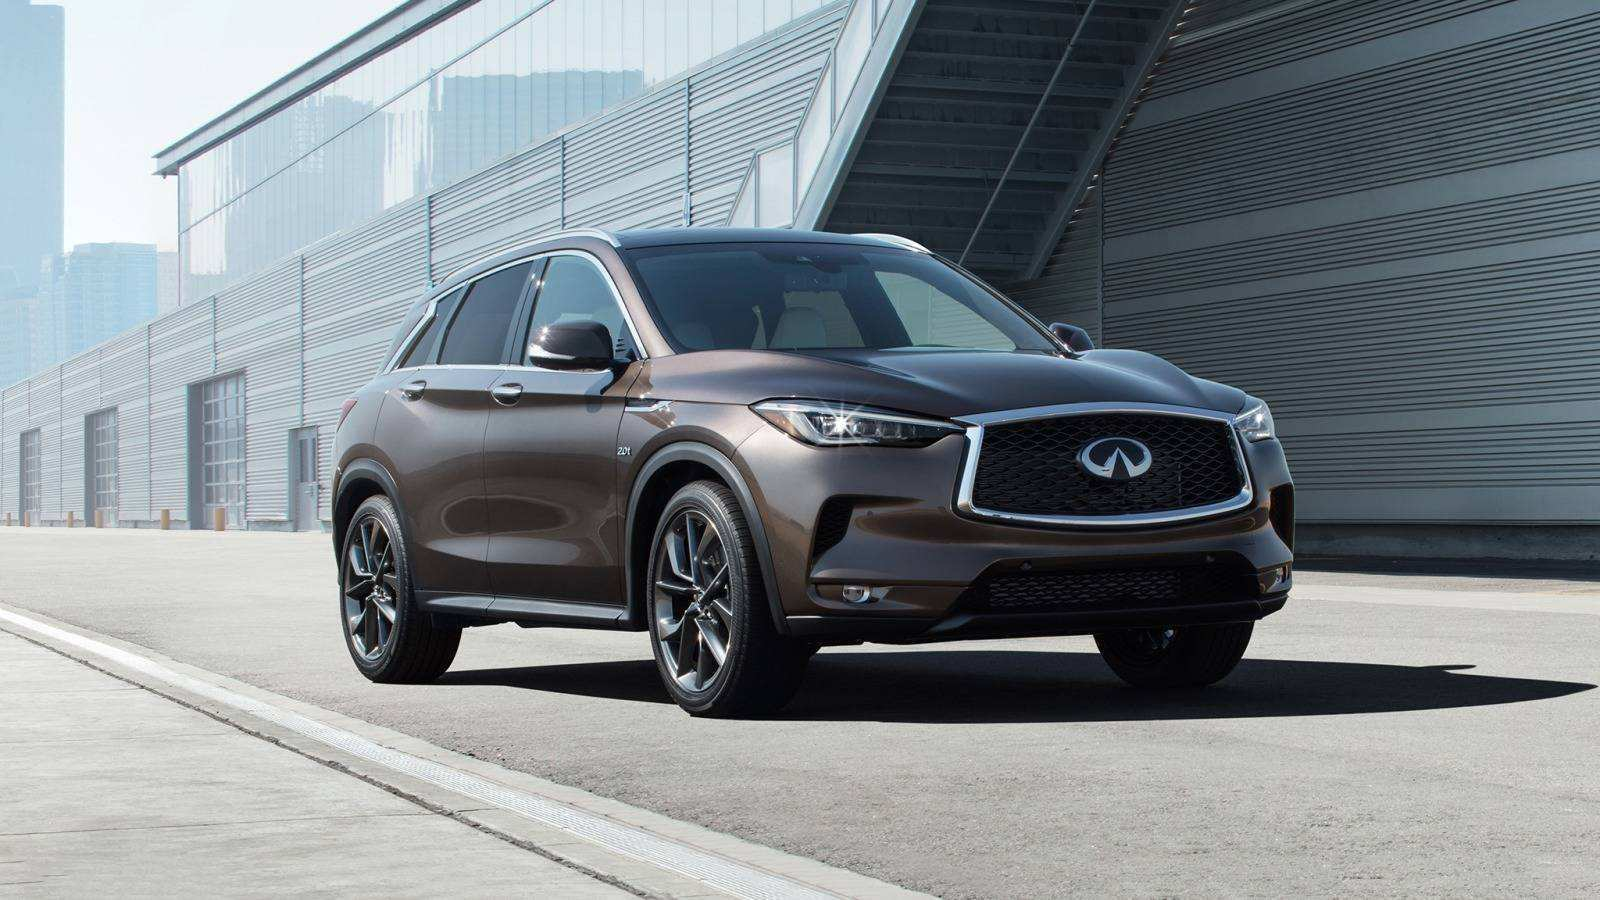 82 All New The Infiniti Qx50 2019 Black First Drive Ratings with The Infiniti Qx50 2019 Black First Drive